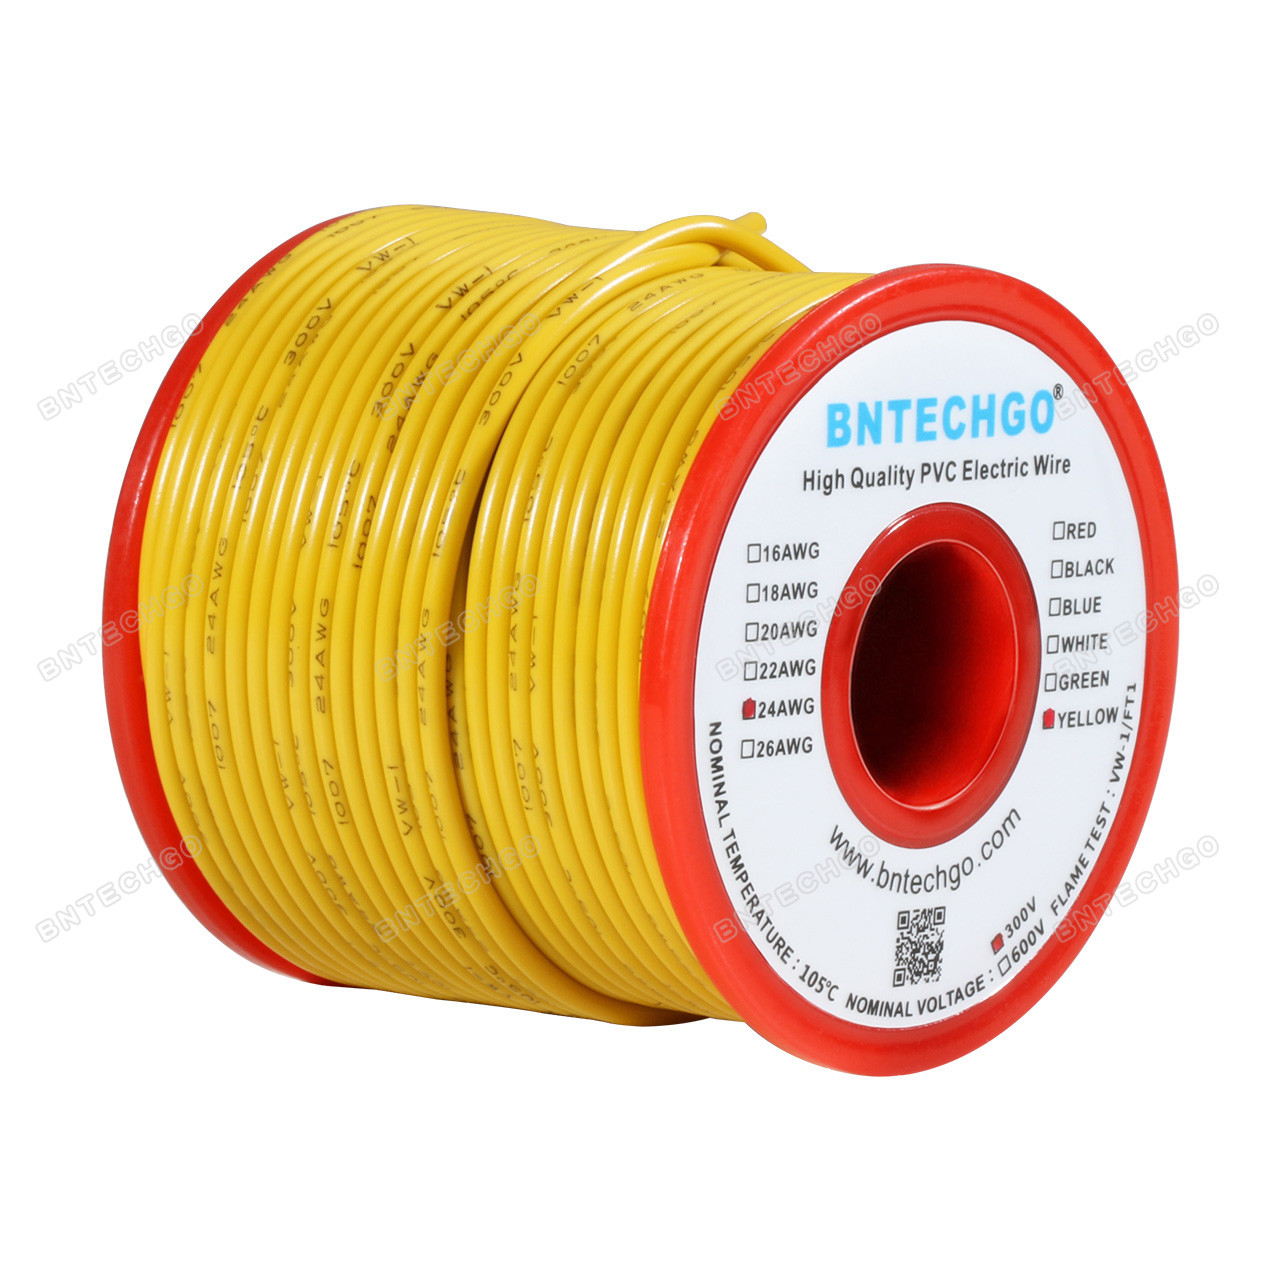 BNTECHGO 20 AWG 1007 Electric Wire 20 Gauge PVC 1007 Wire Stranded Wire Hook Up Wire 300V Stranded Tinned Copper Wire White 25 ft Per Reel for DIY bntechgo.com